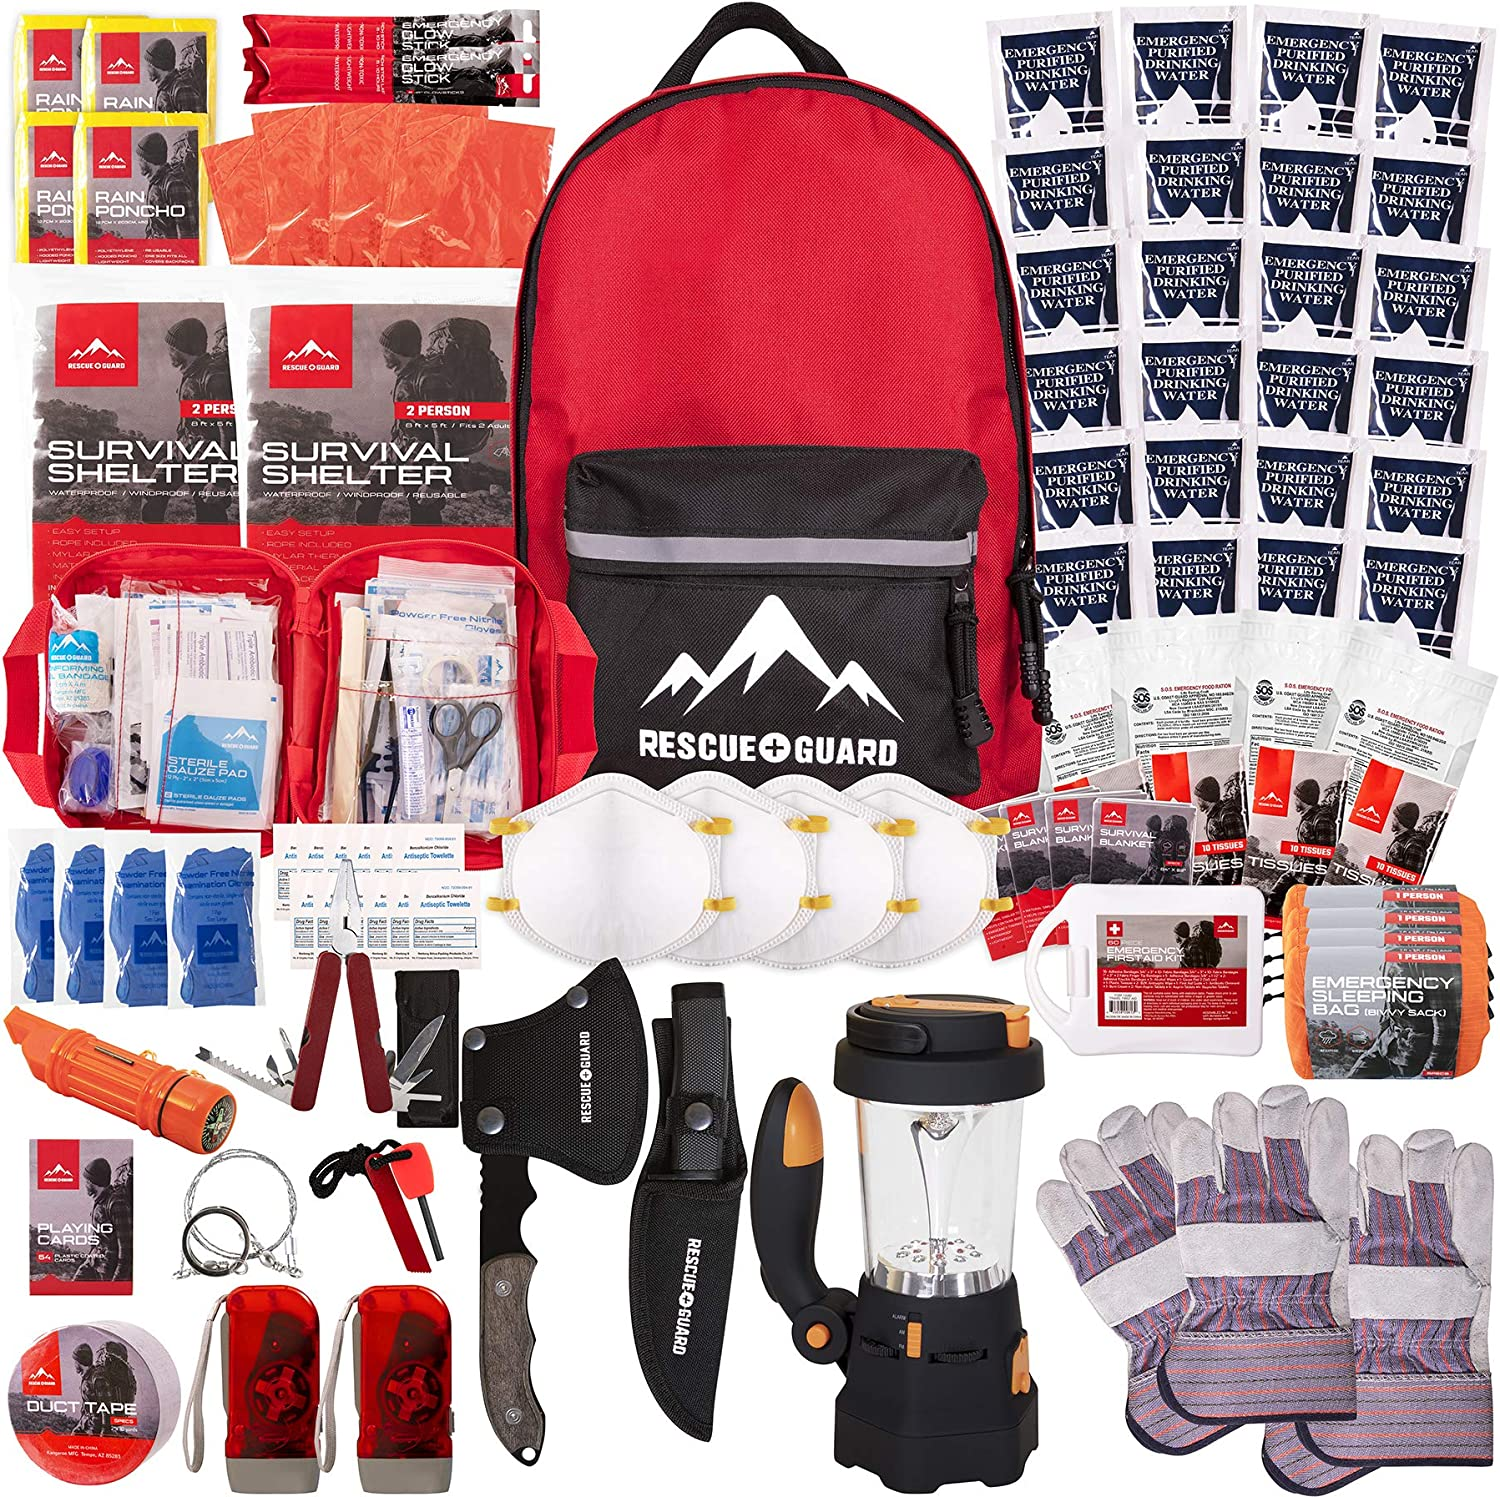 Rescue Guard First Aid Kit Hurricane Disaster or Earthquake Emergency Survival Bug Out Bag Supplies for Families - 72 Hours of Disaster Preparedness Supplies (Premium Survival Pack)